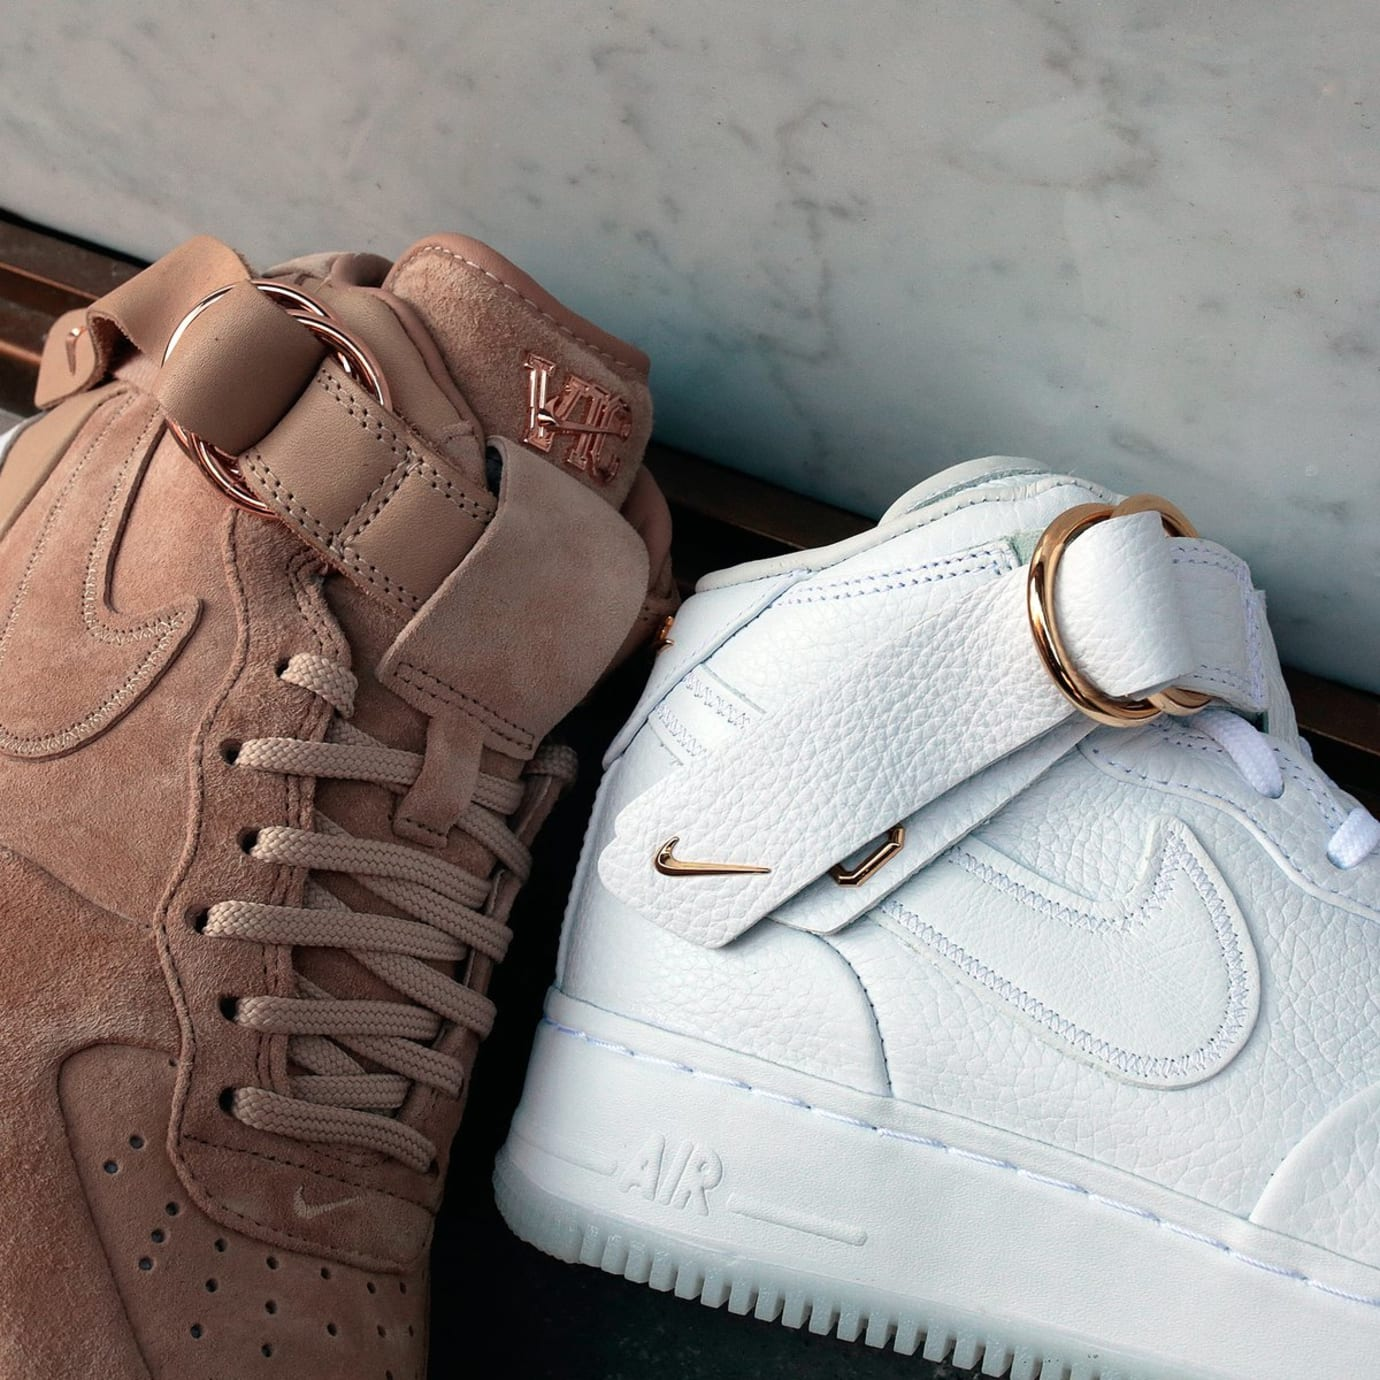 free shipping 342e0 68577 Victor Cruz x Nike Air Force 1 Mid CMFT QS (Tan and White)